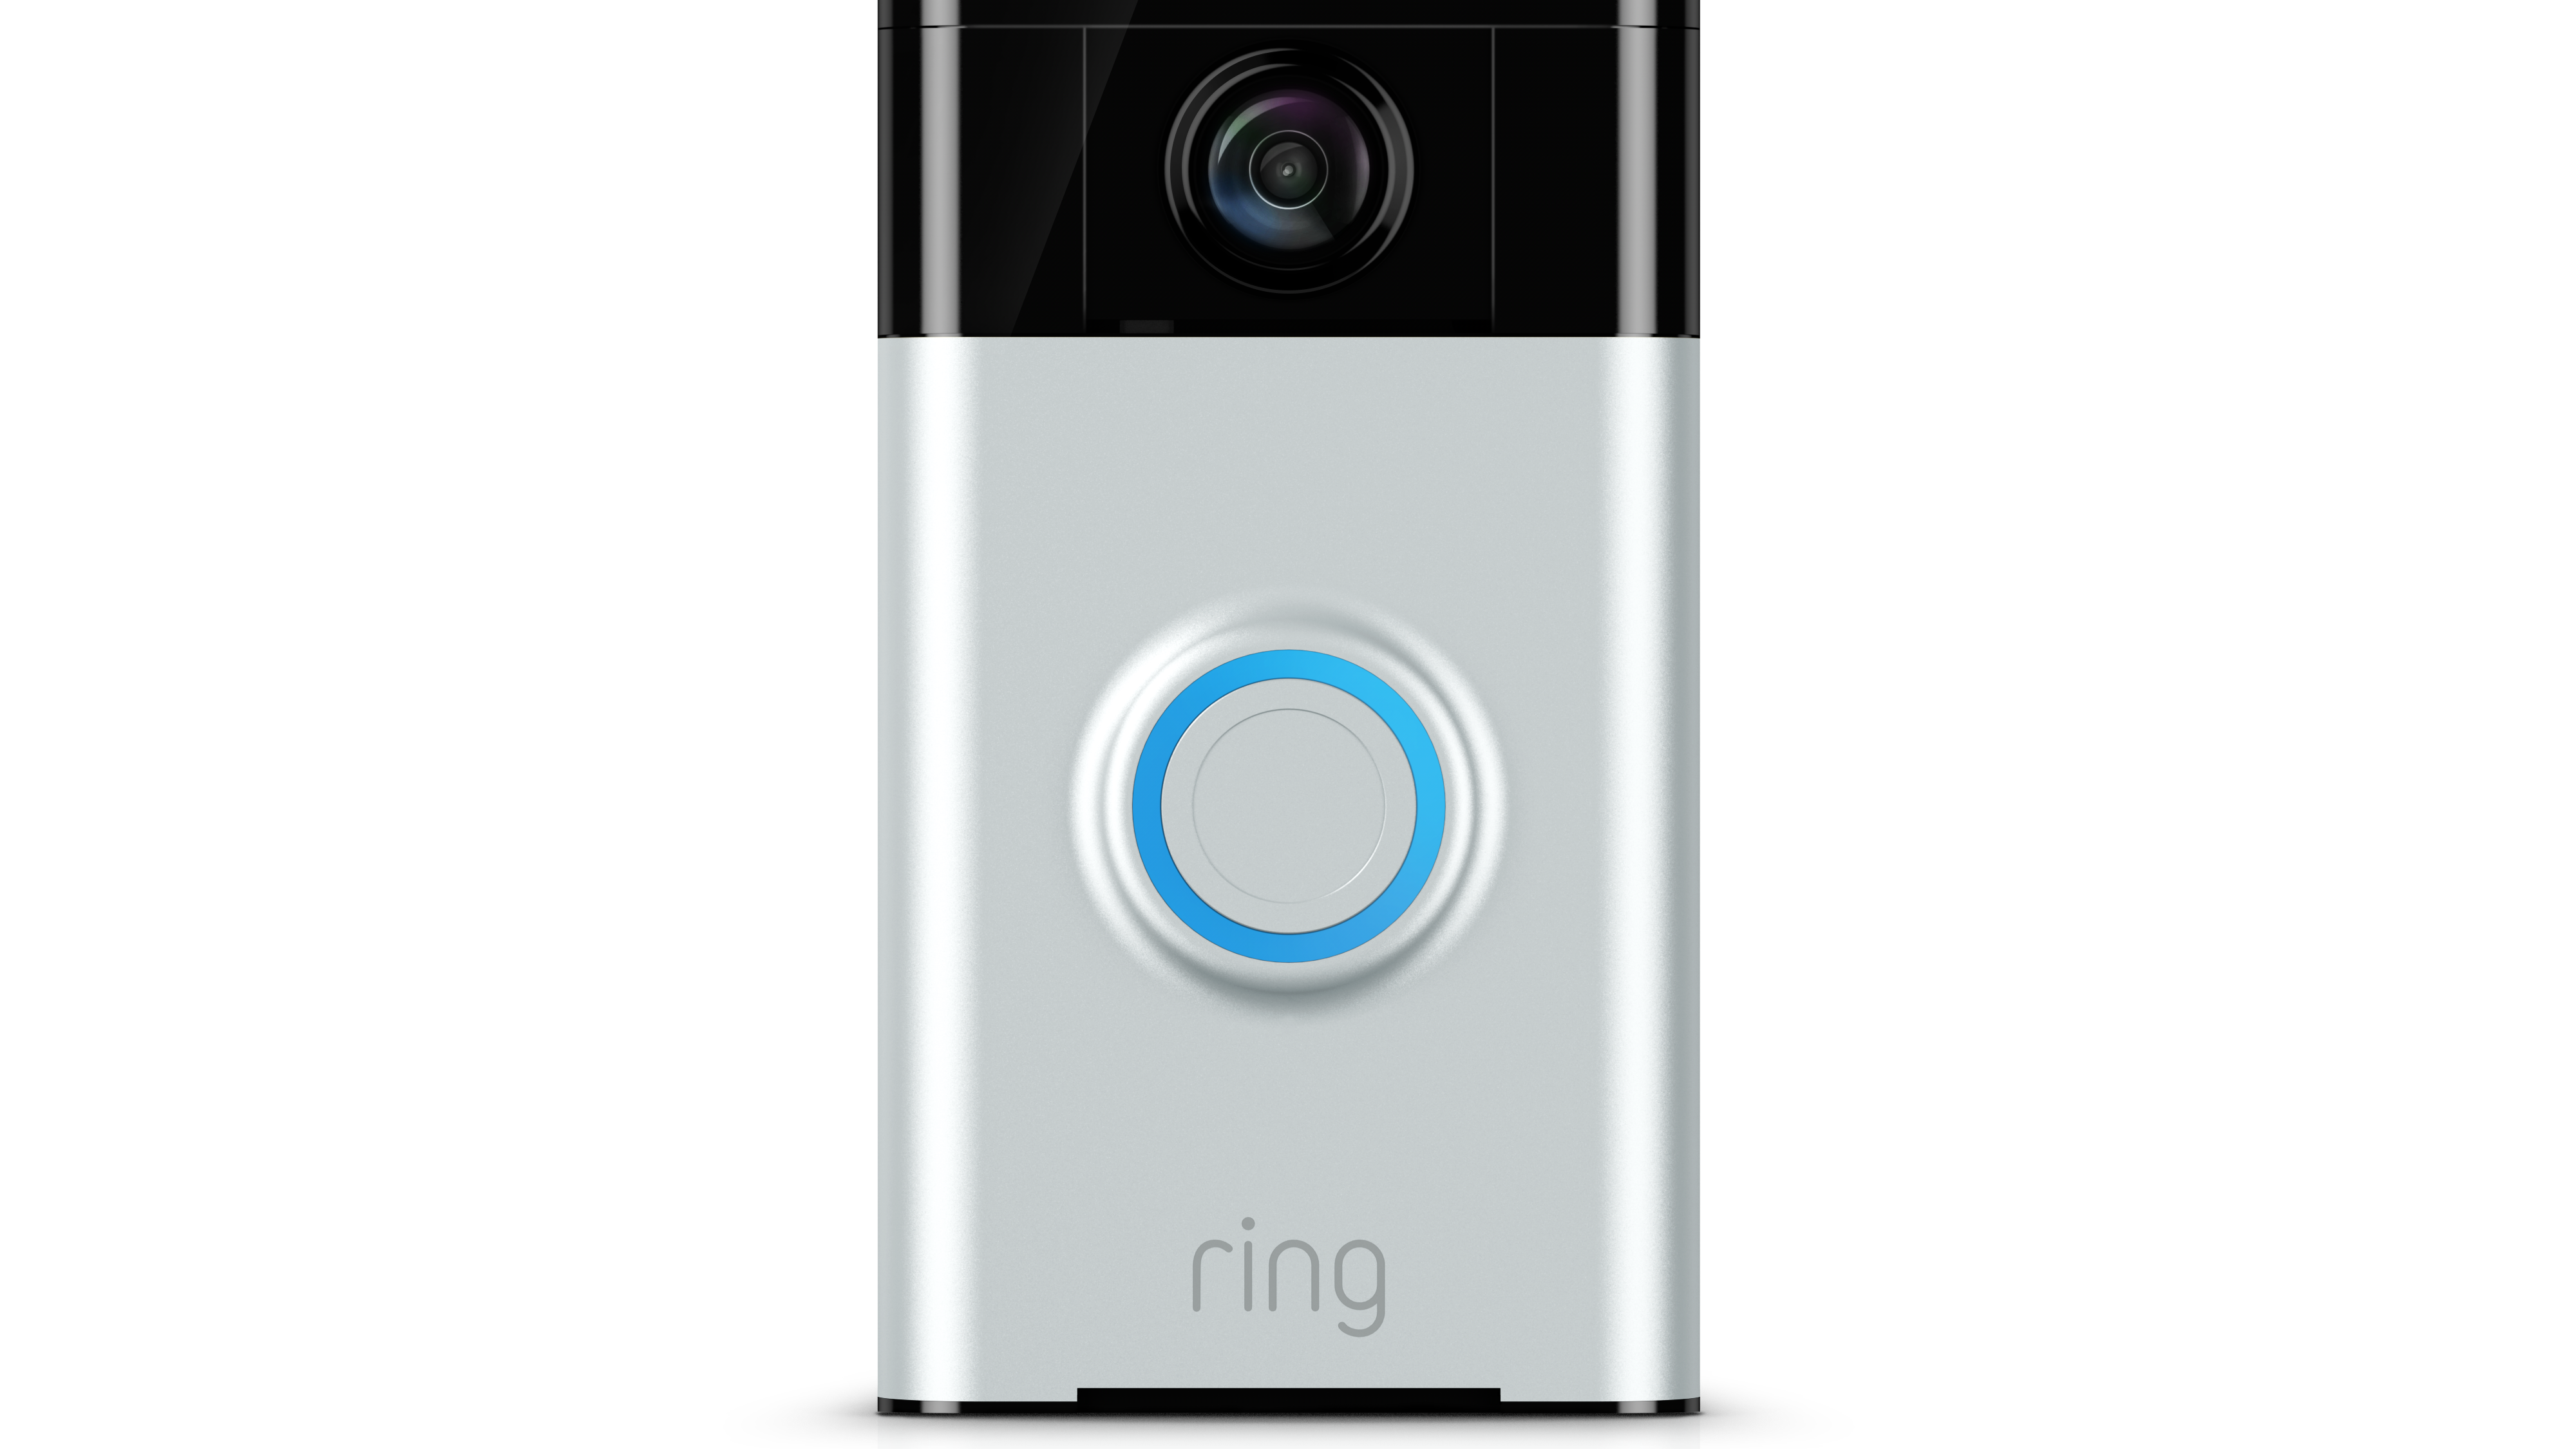 Ring's Smart Doorbell Let A Man Spy On His Ex-Boyfriend, Even After The Password Was Changed